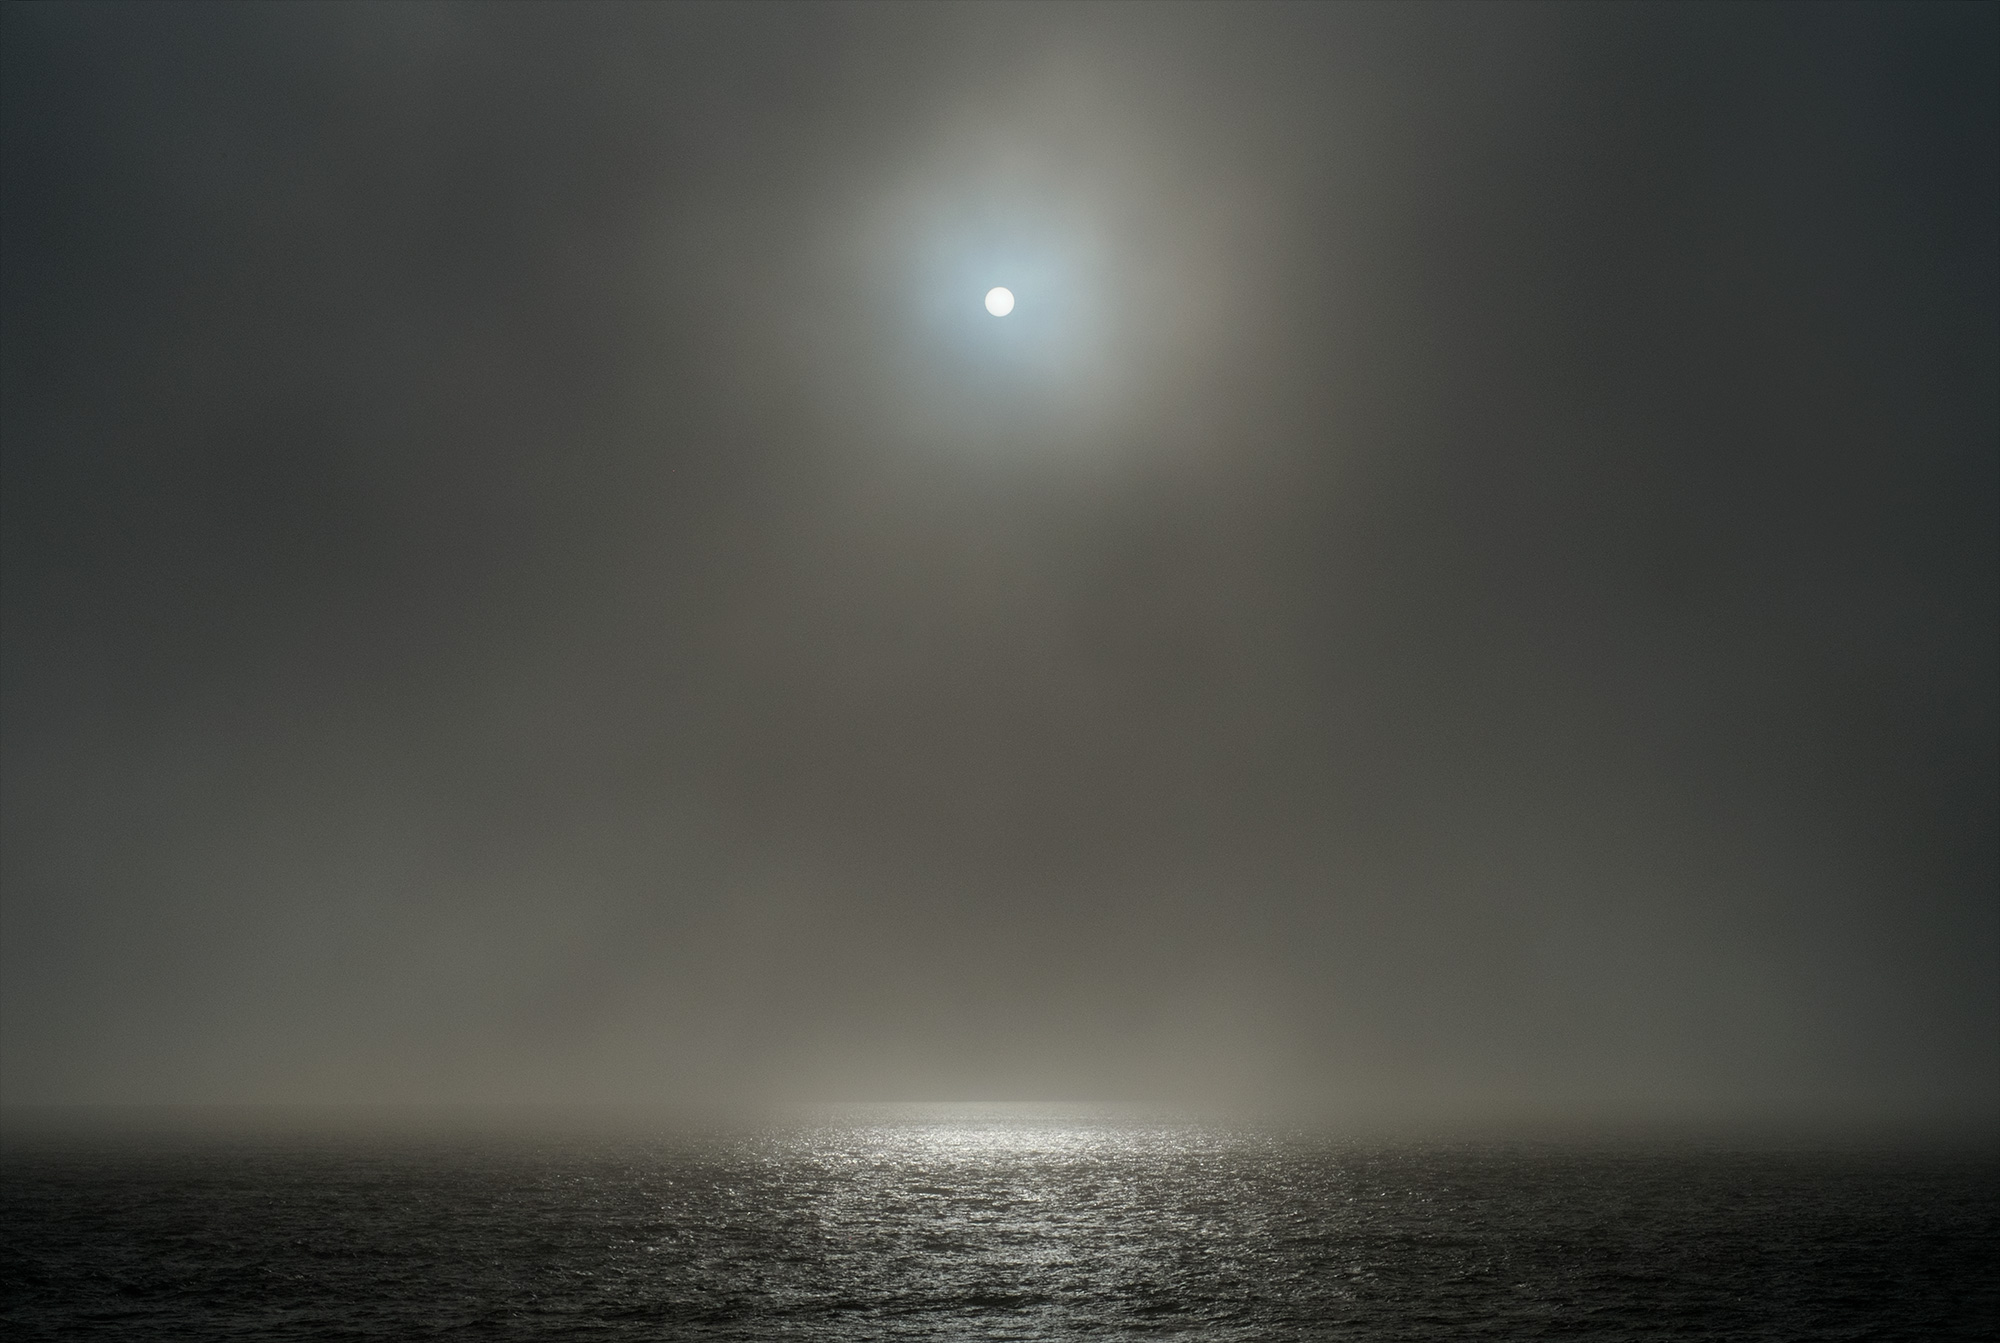 Sunrise over the pacific ocean with sun that looks like the moon.